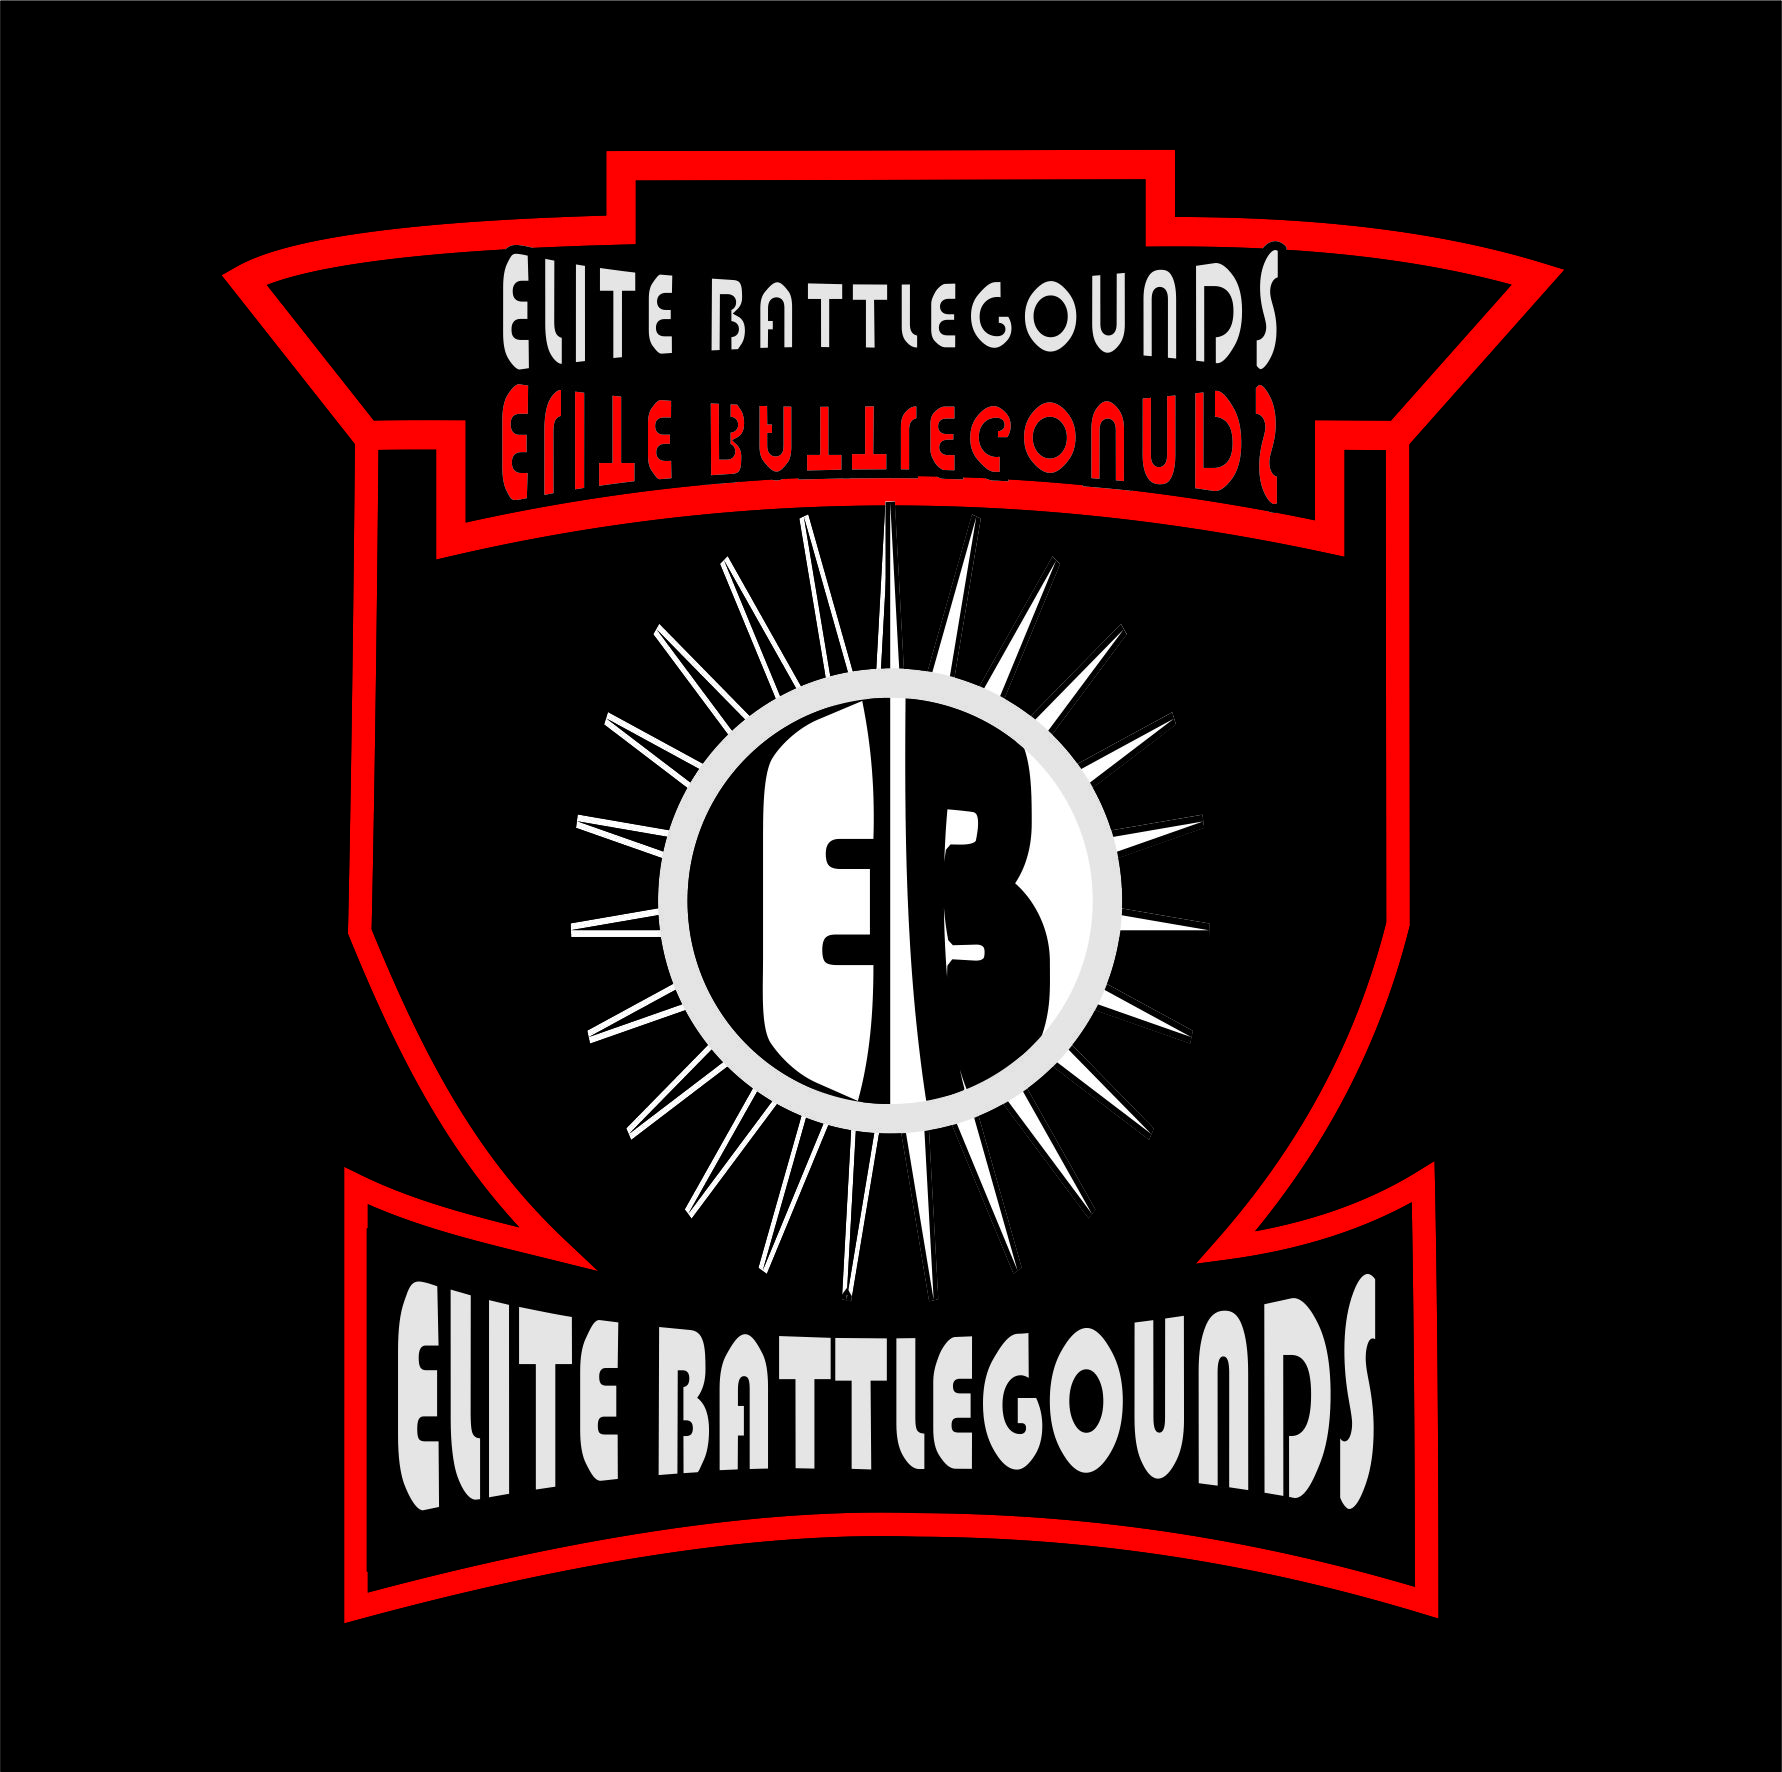 Logo Design by Teguh Hanuraga - Entry No. 29 in the Logo Design Contest Creative Logo Design for Elite Battlegrounds.